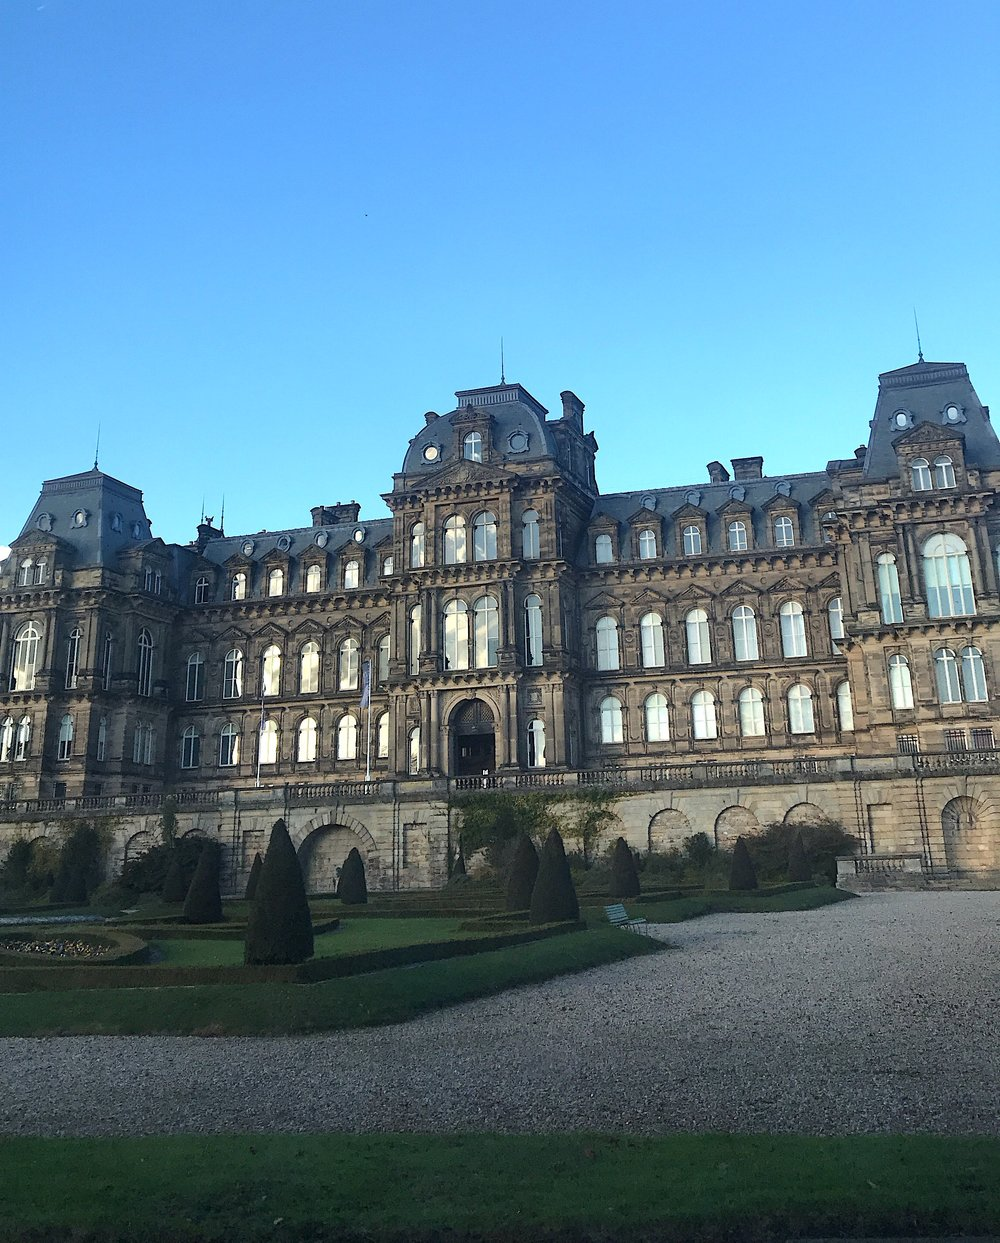 The fabulous chateau-inspired architecture of the Bowes Museum in the market town of Barnard Castle, County Durham, in the wintery afternoon light of delivery day.